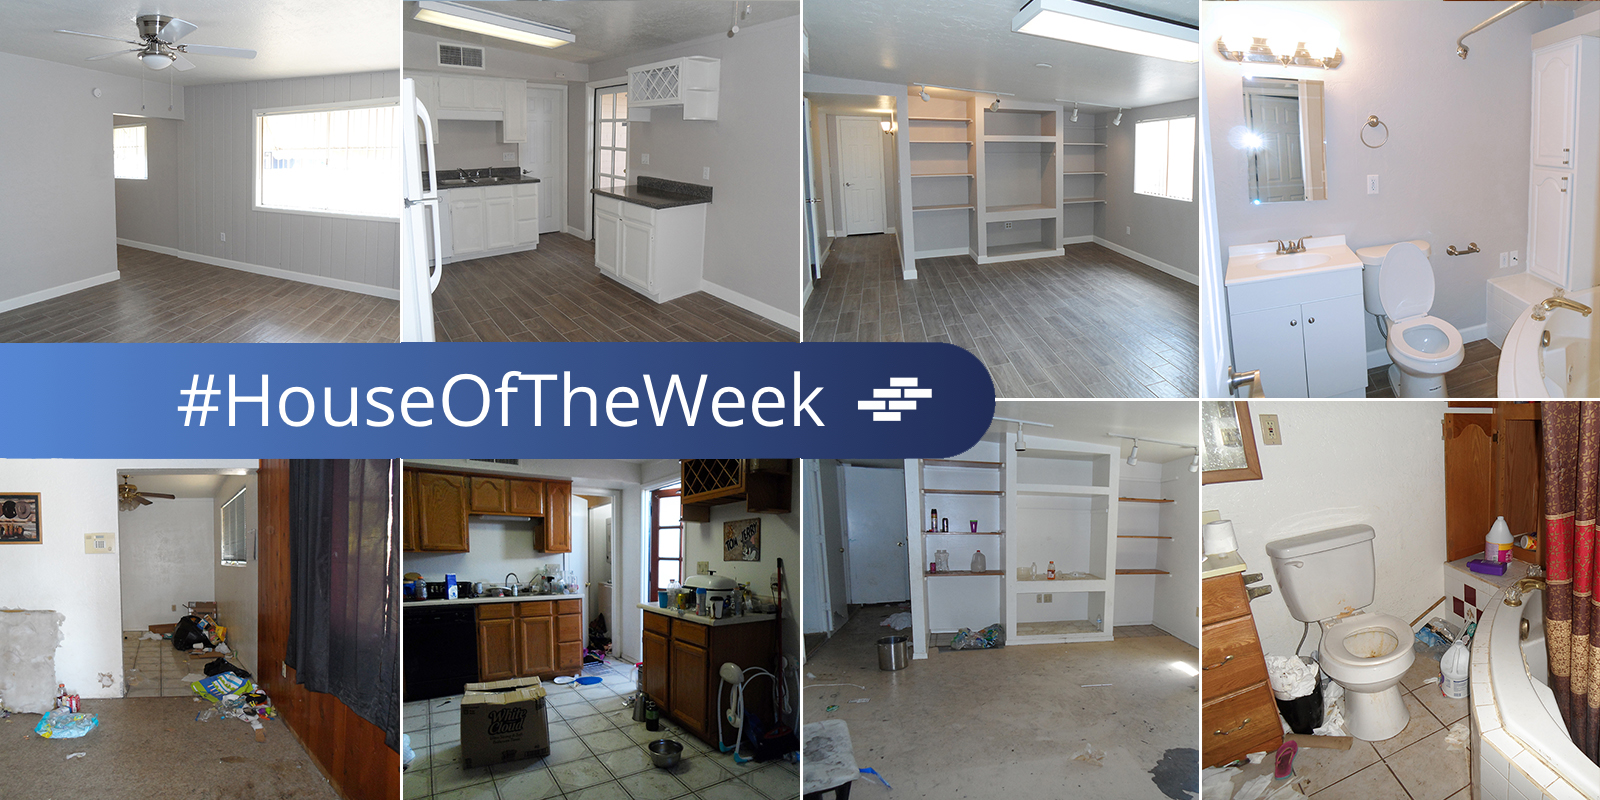 #HOTW with Colony American Finance . This week a house in Mesa, AZ.